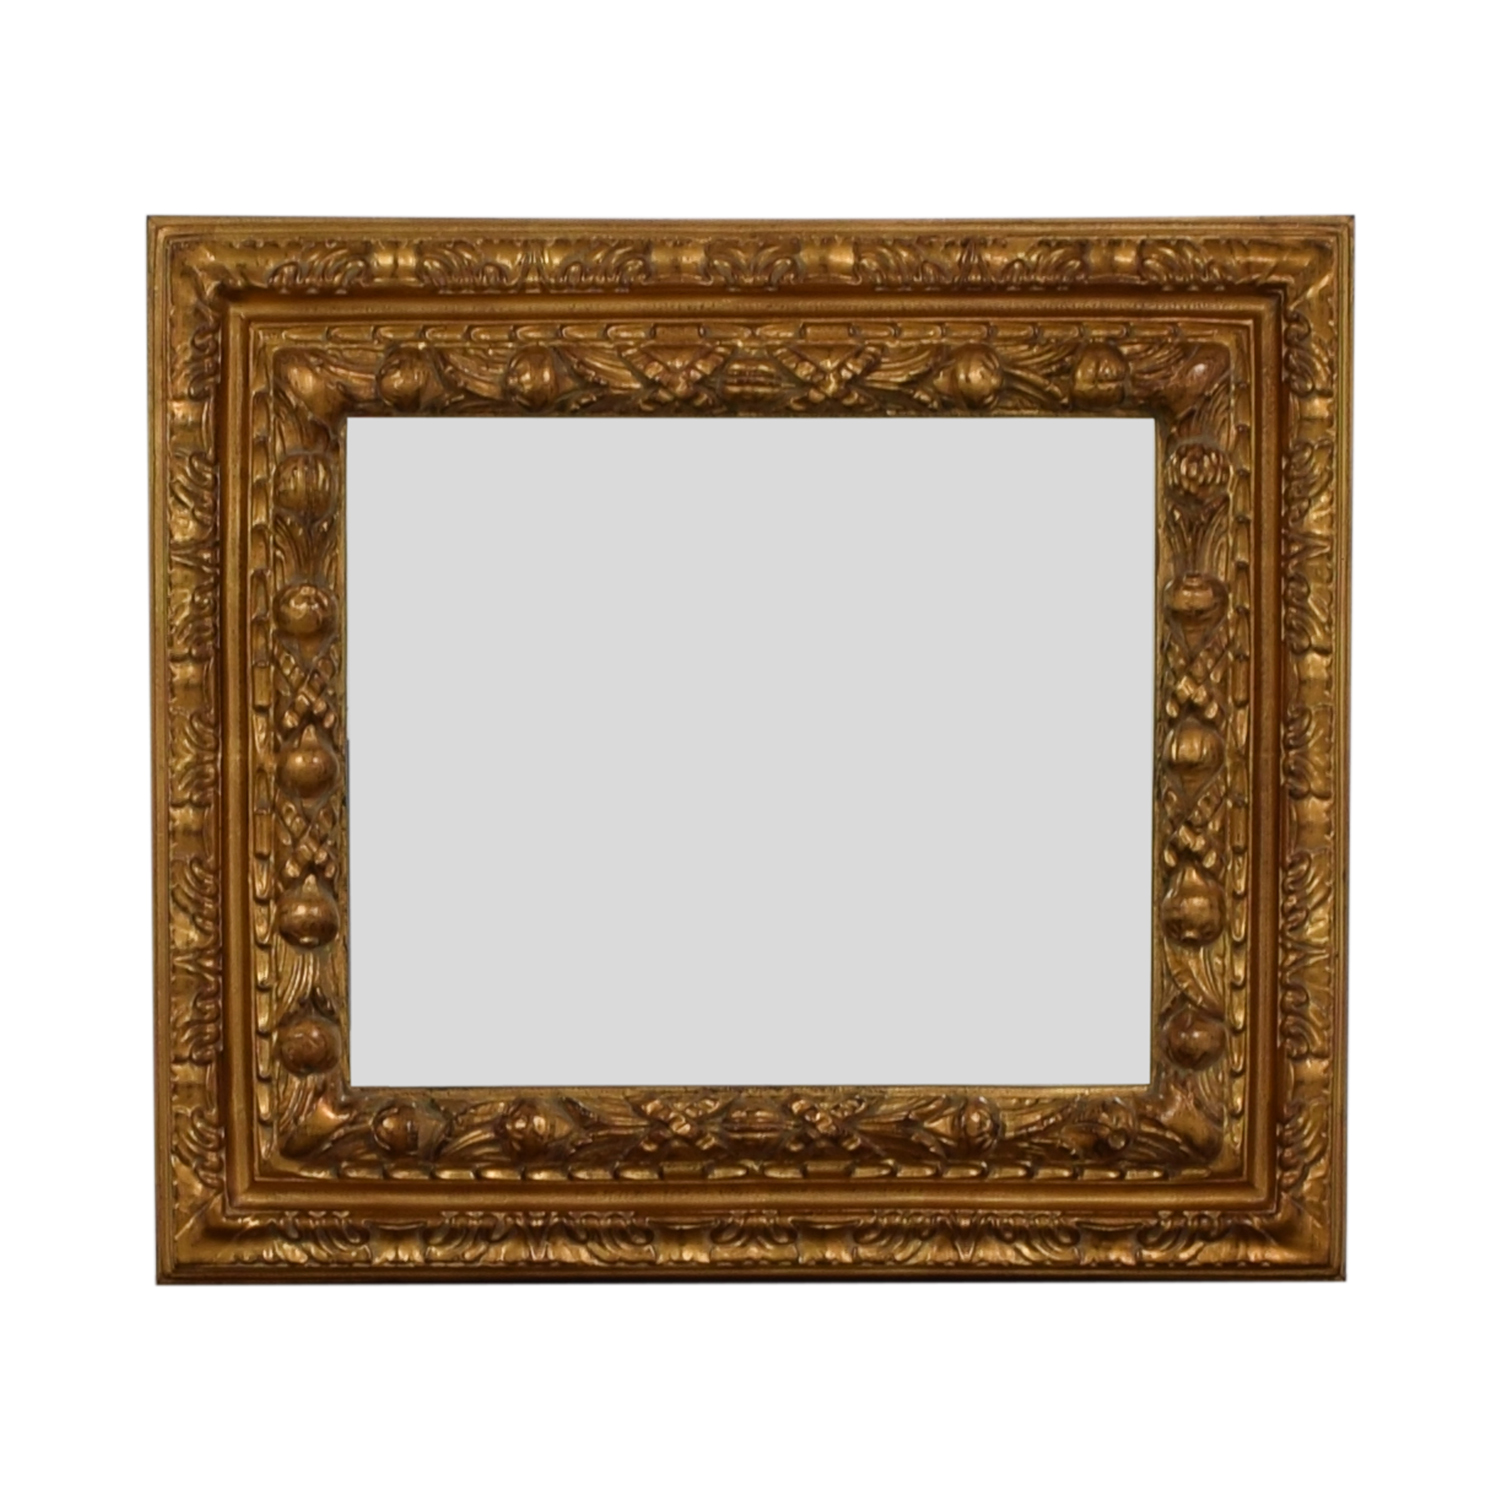 buy Gold Distressed Wood Framed Wall Mirror  Mirrors